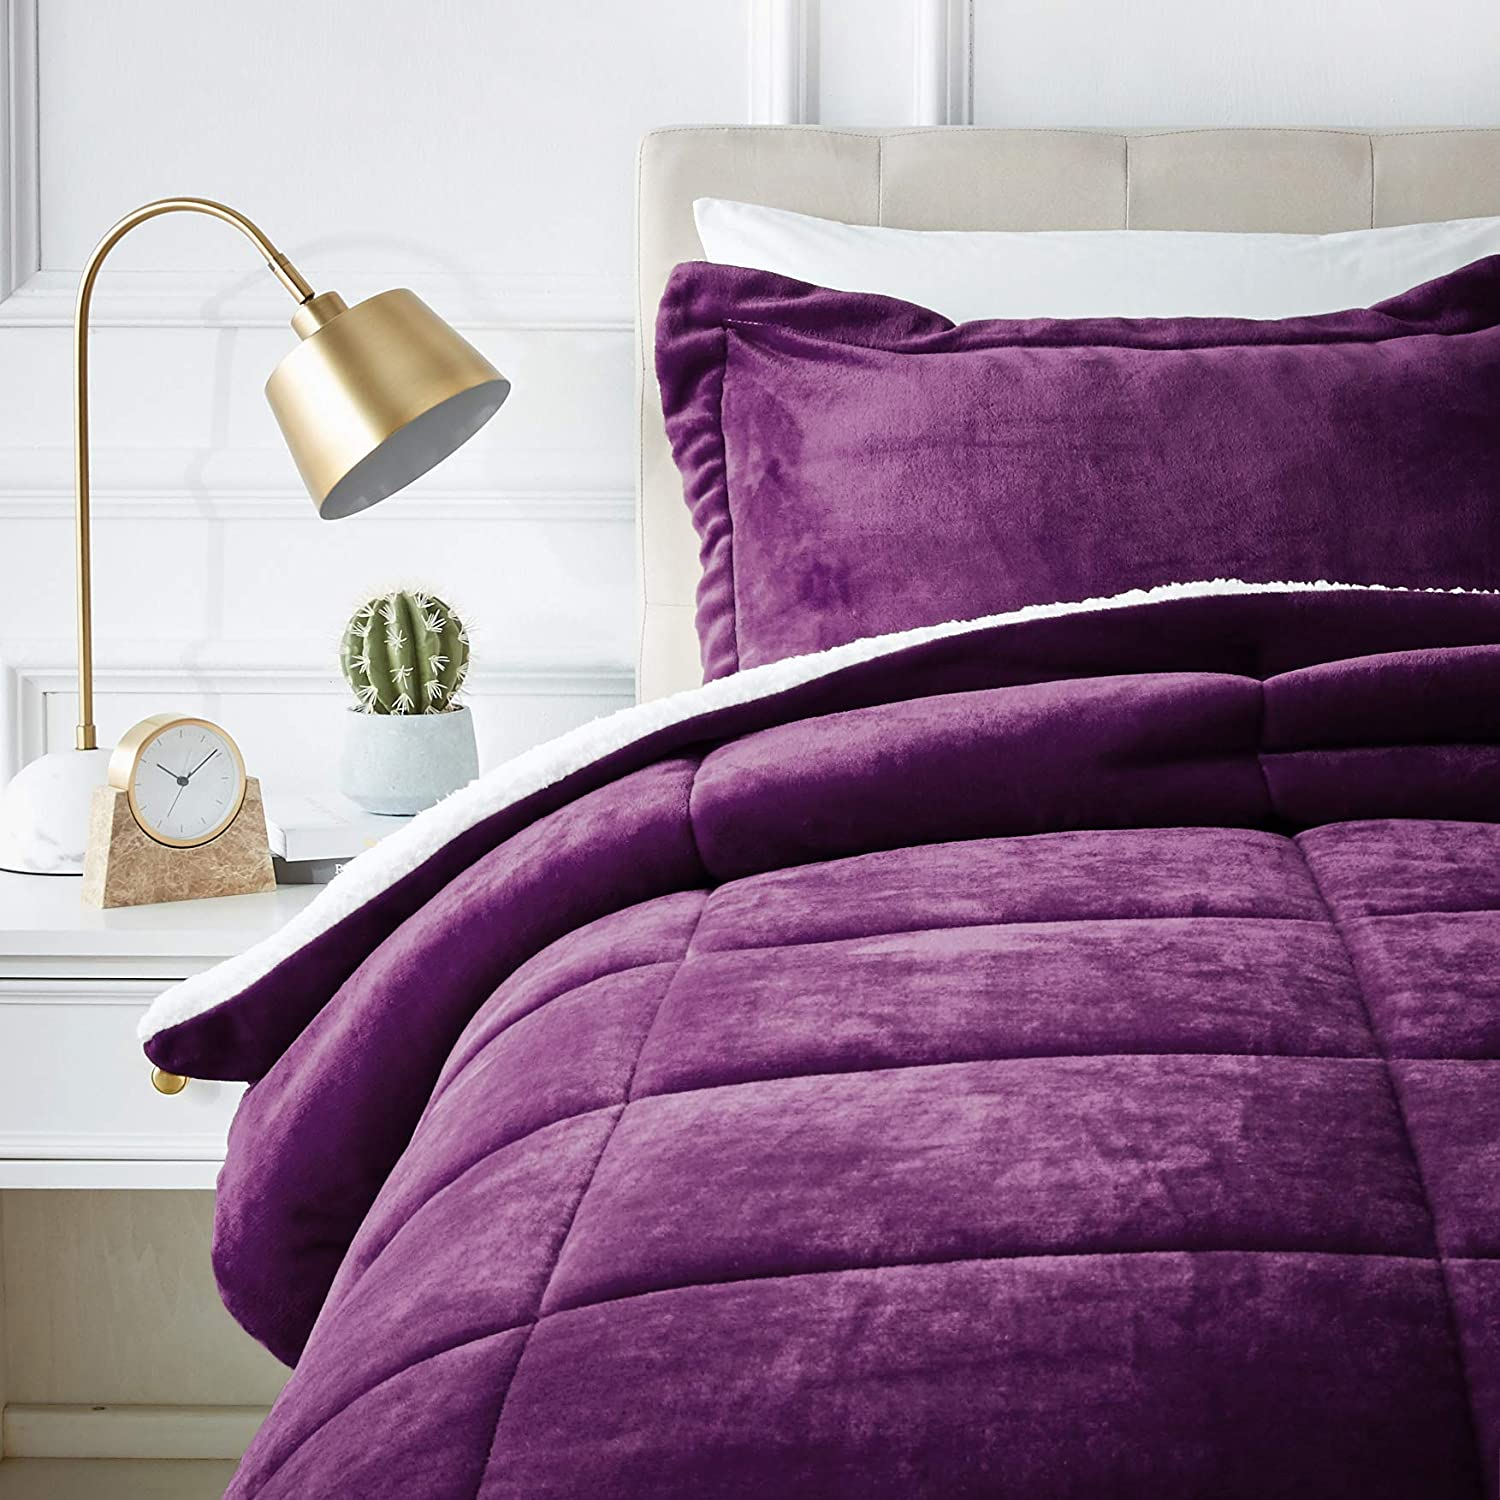 AmazonBasics Micromink Sherpa Comforter Set - Ultra-Soft, Fray-Resistant -Twin, Plum